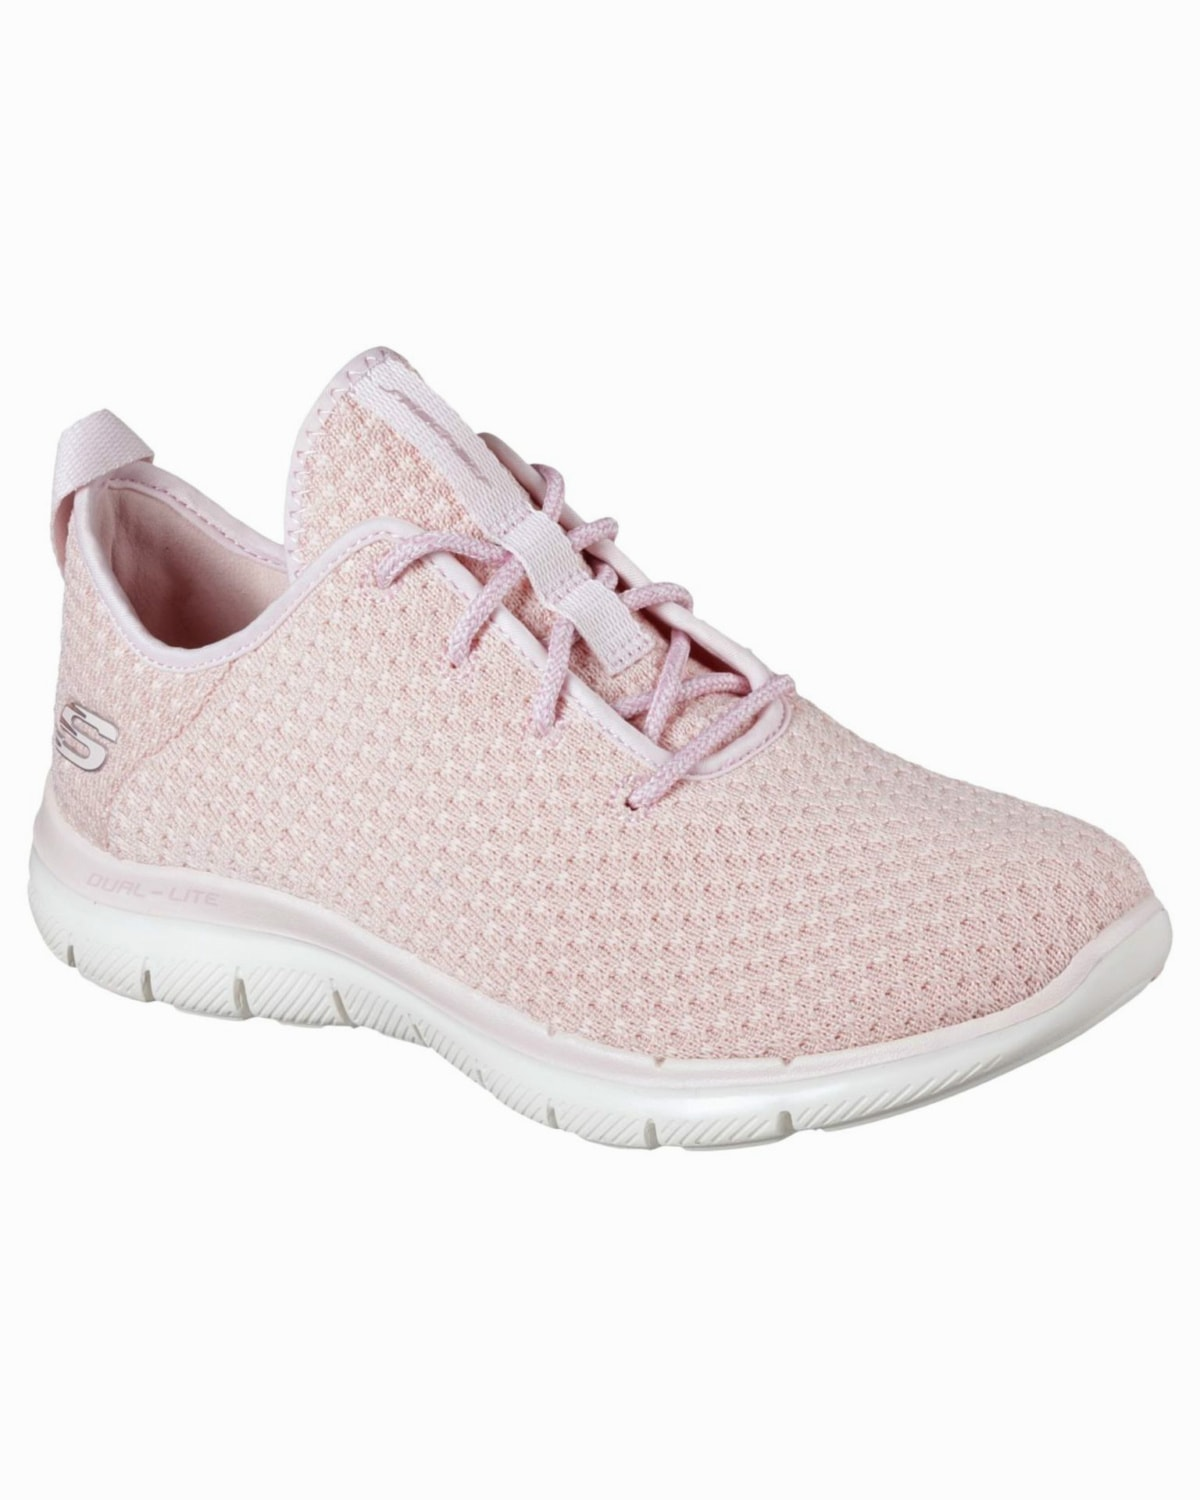 Skechers Womens Flex Appeal 20 Bold Move – Light Pink 12773_LTPK